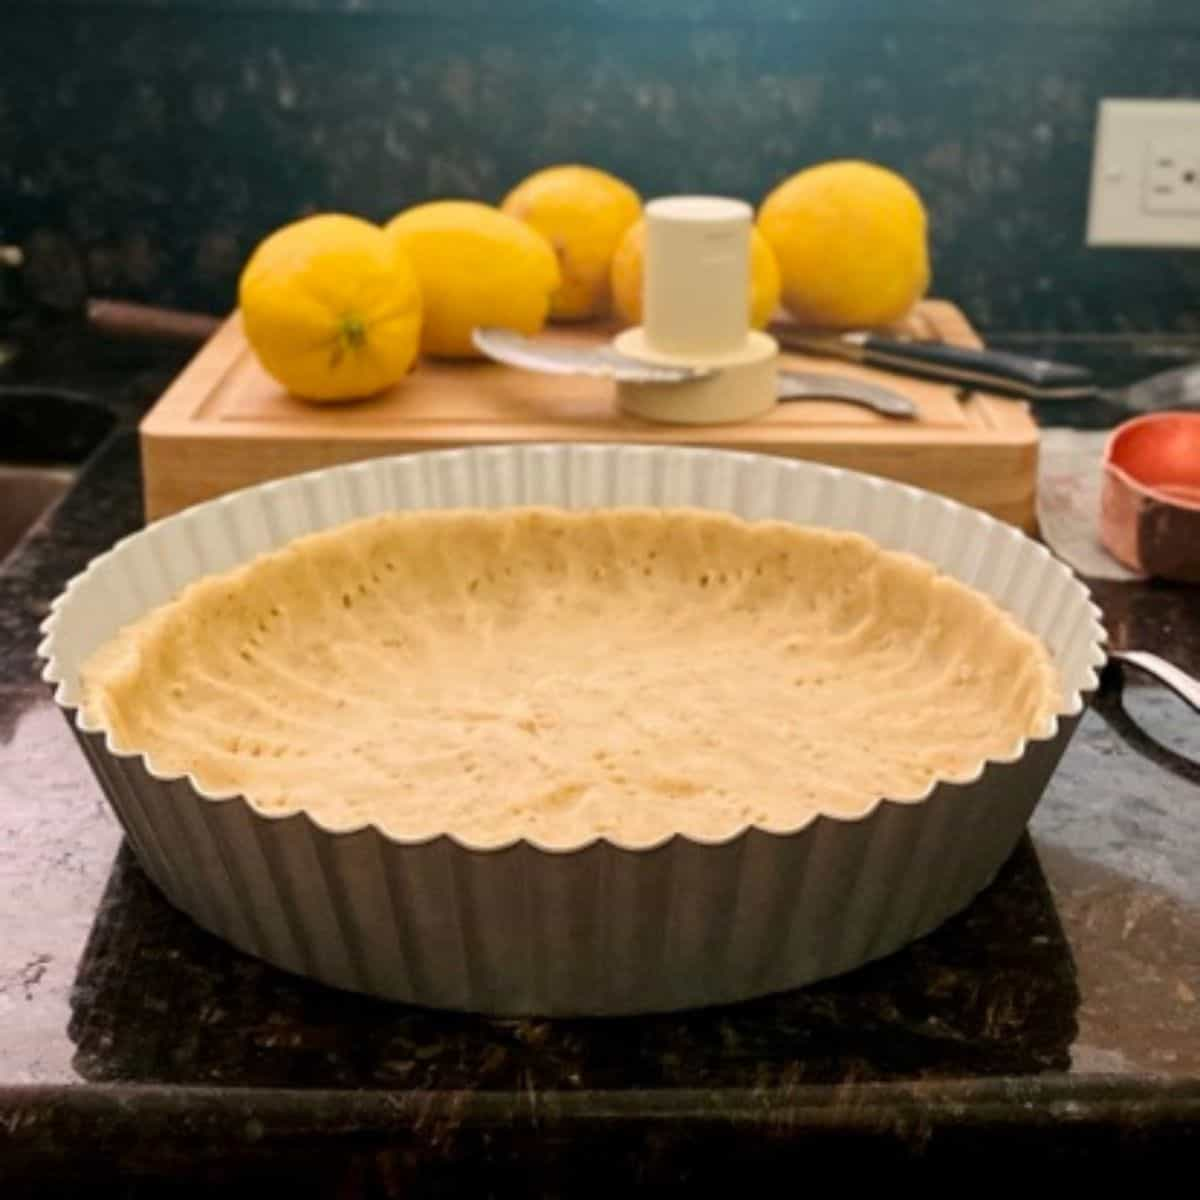 tart pan with unbaked tart dough on counter in front of lemons